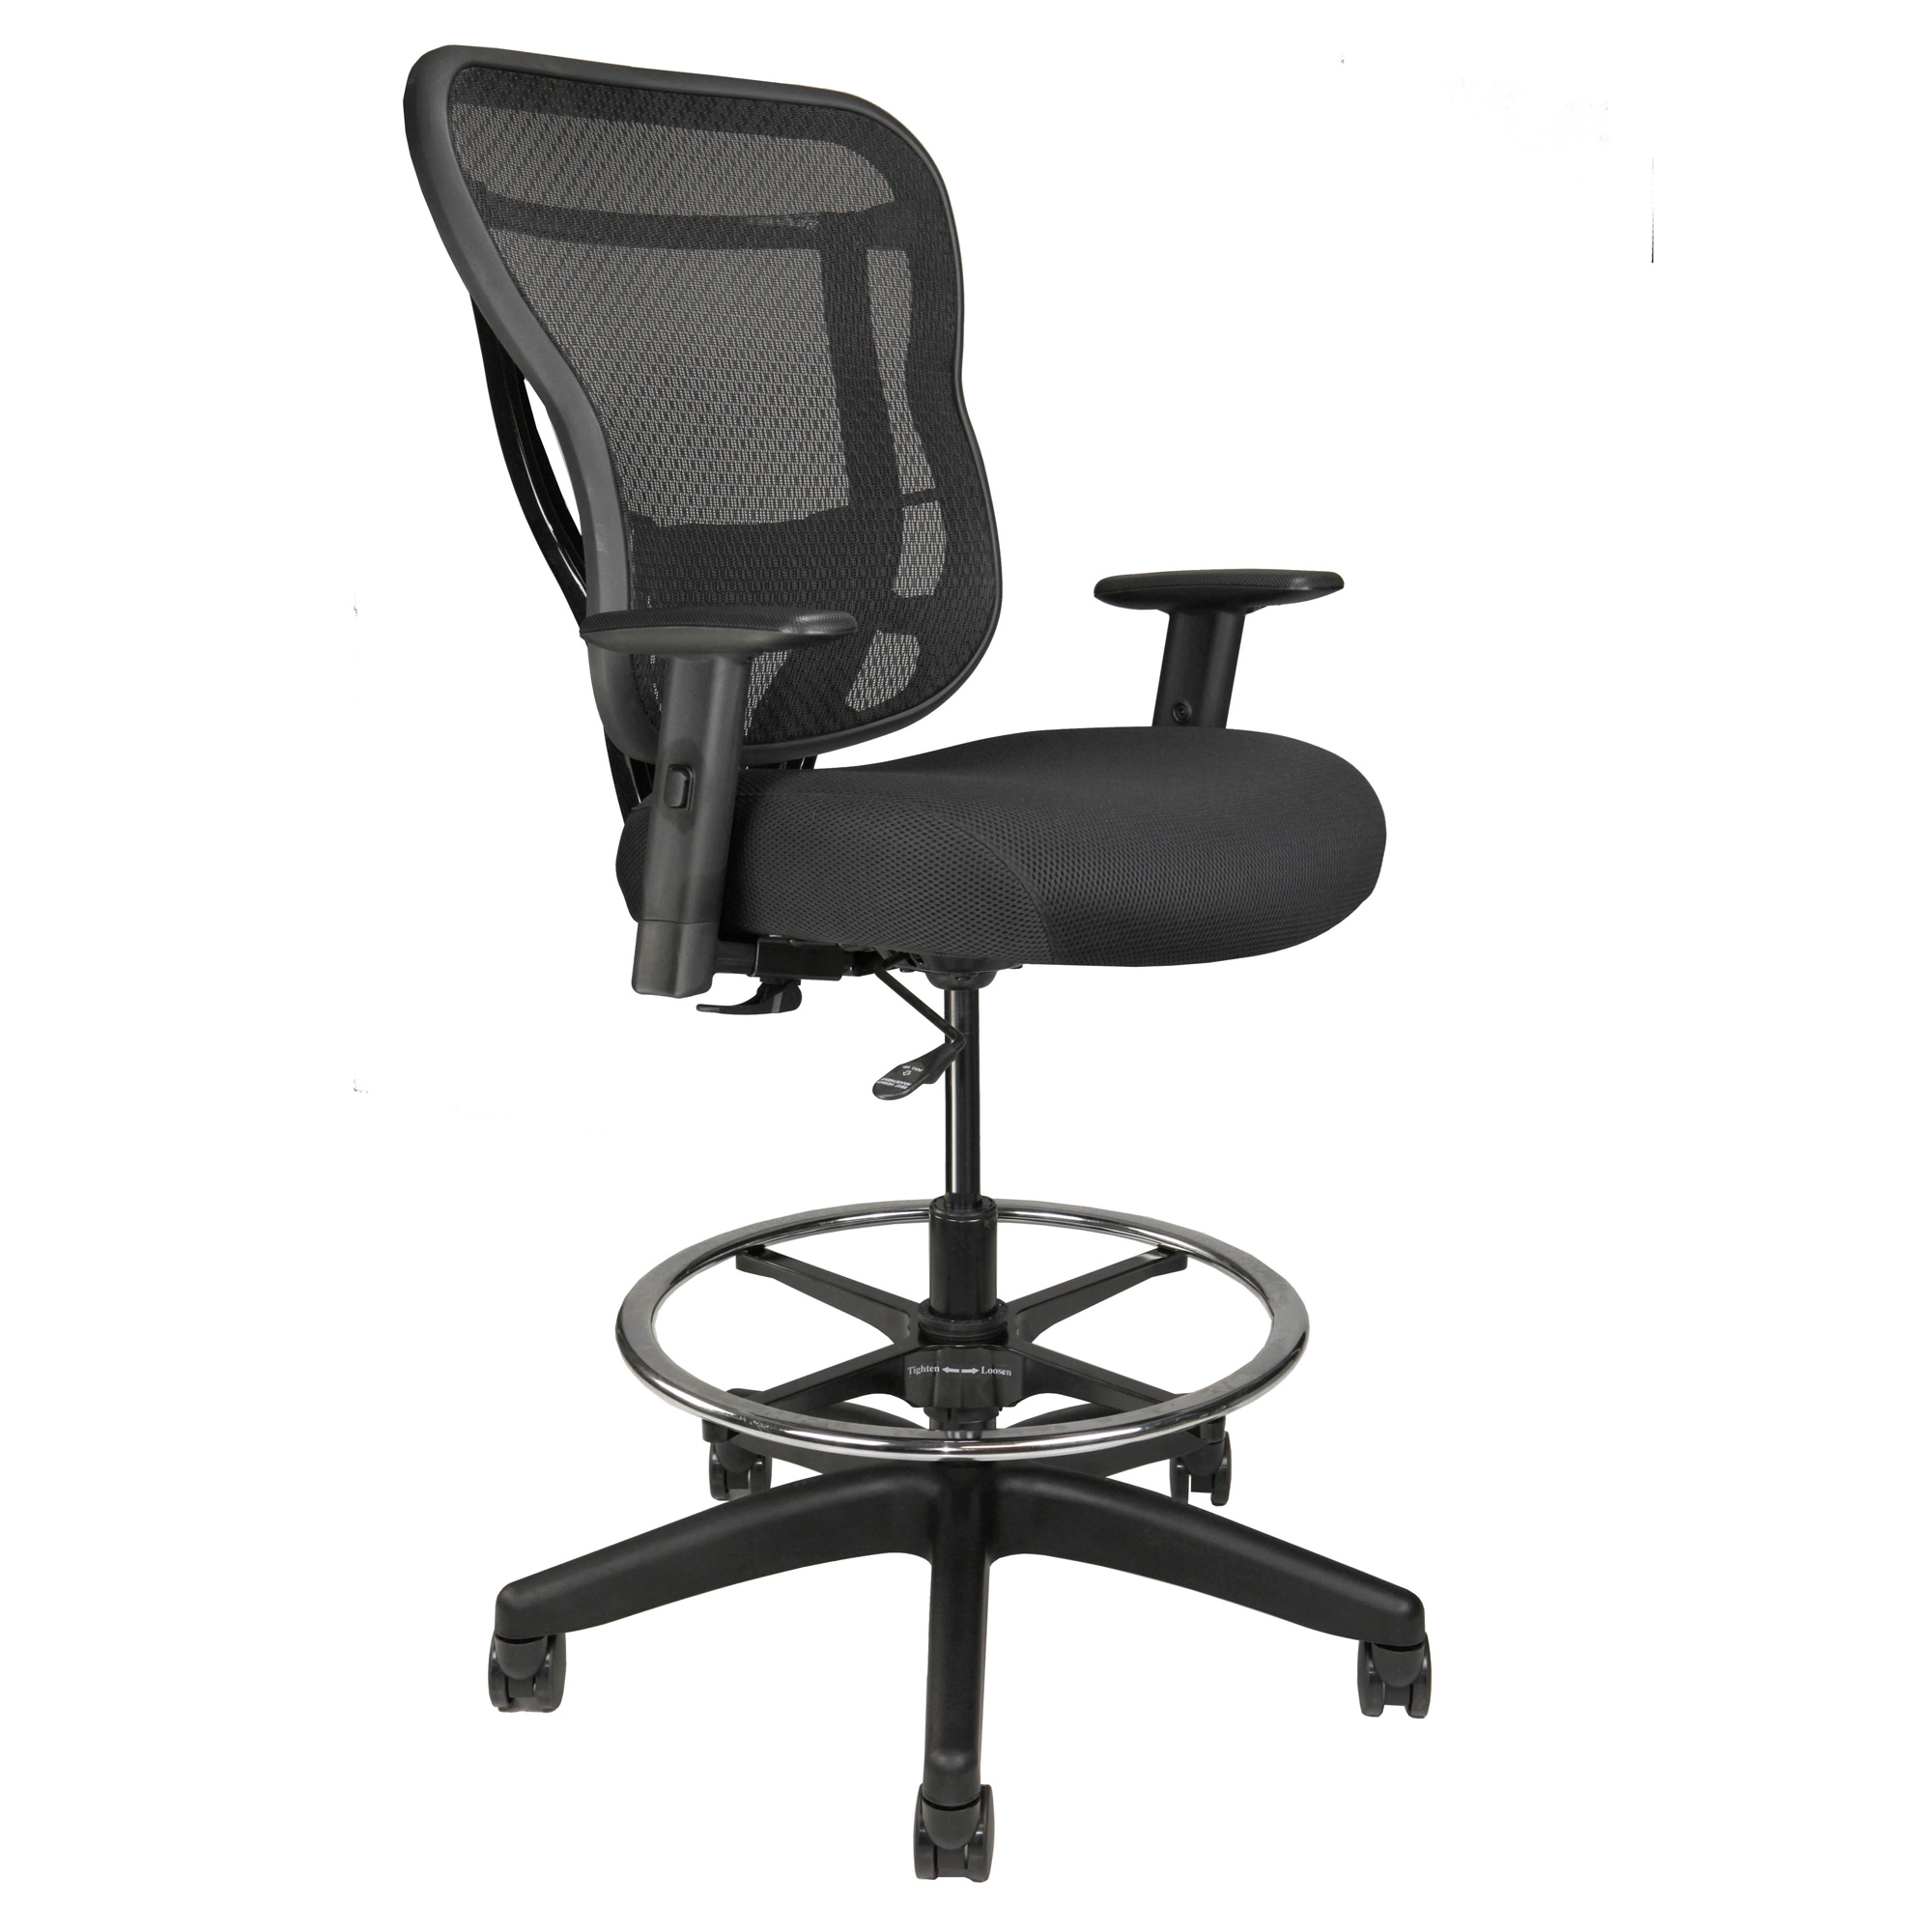 Home Office Stool WIth Arms, Footring, and Wheels